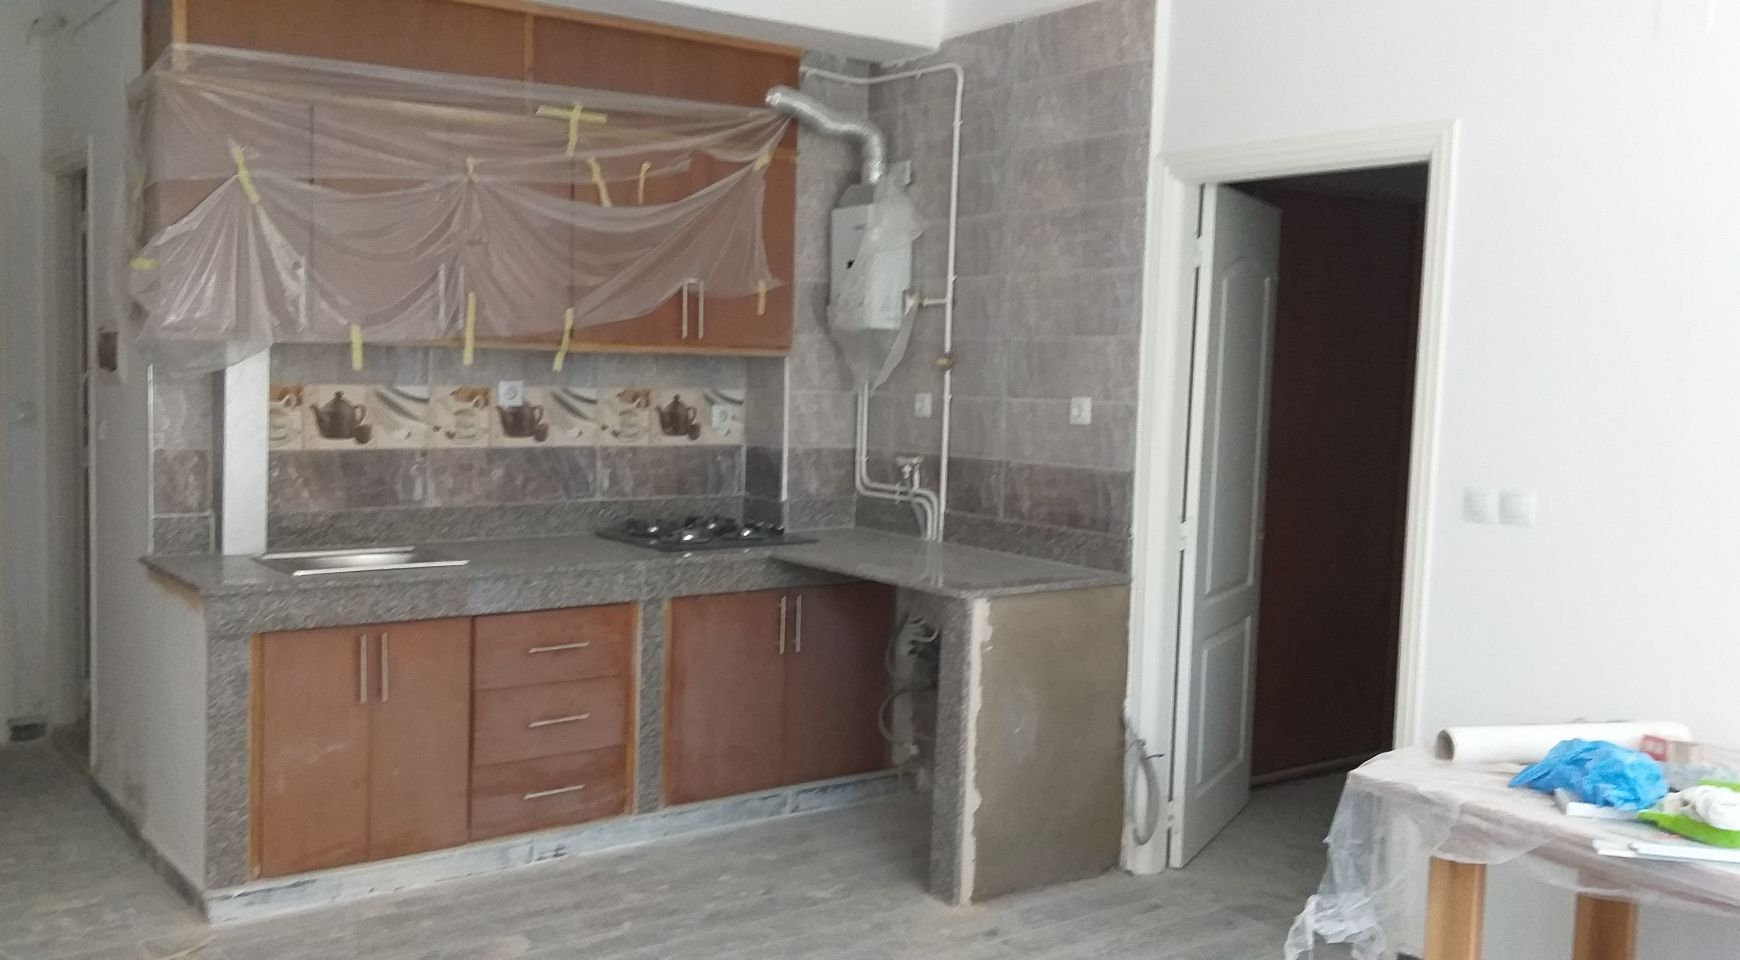 Vente appartement à bejaia, Aamriw pour 850 million